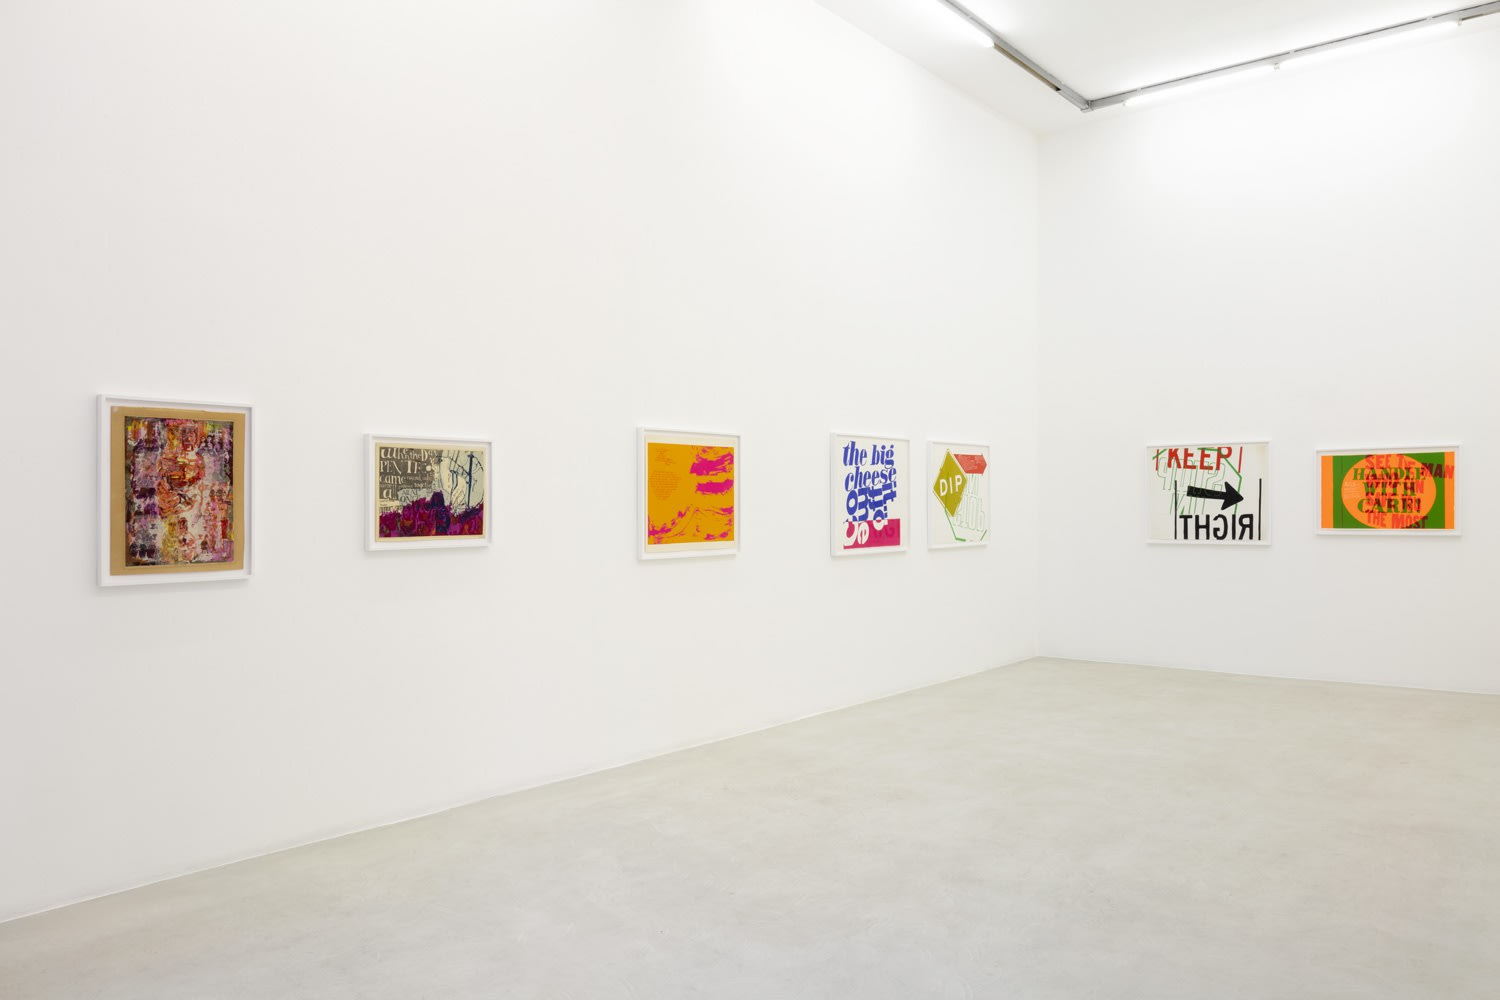 installation view, kaufmann repetto, milan, 2021